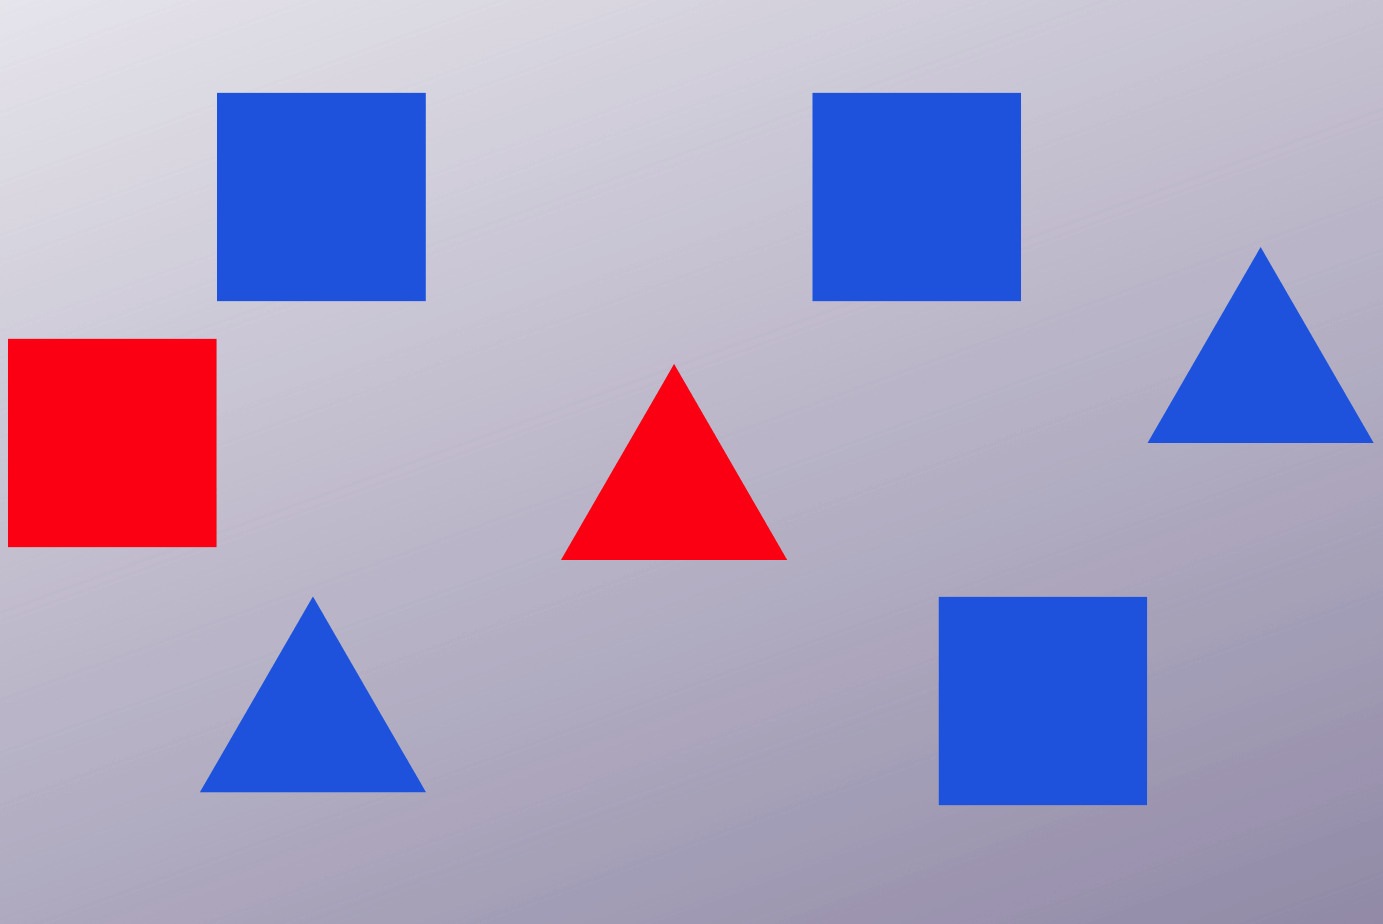 Stylised illustration of the visual search task